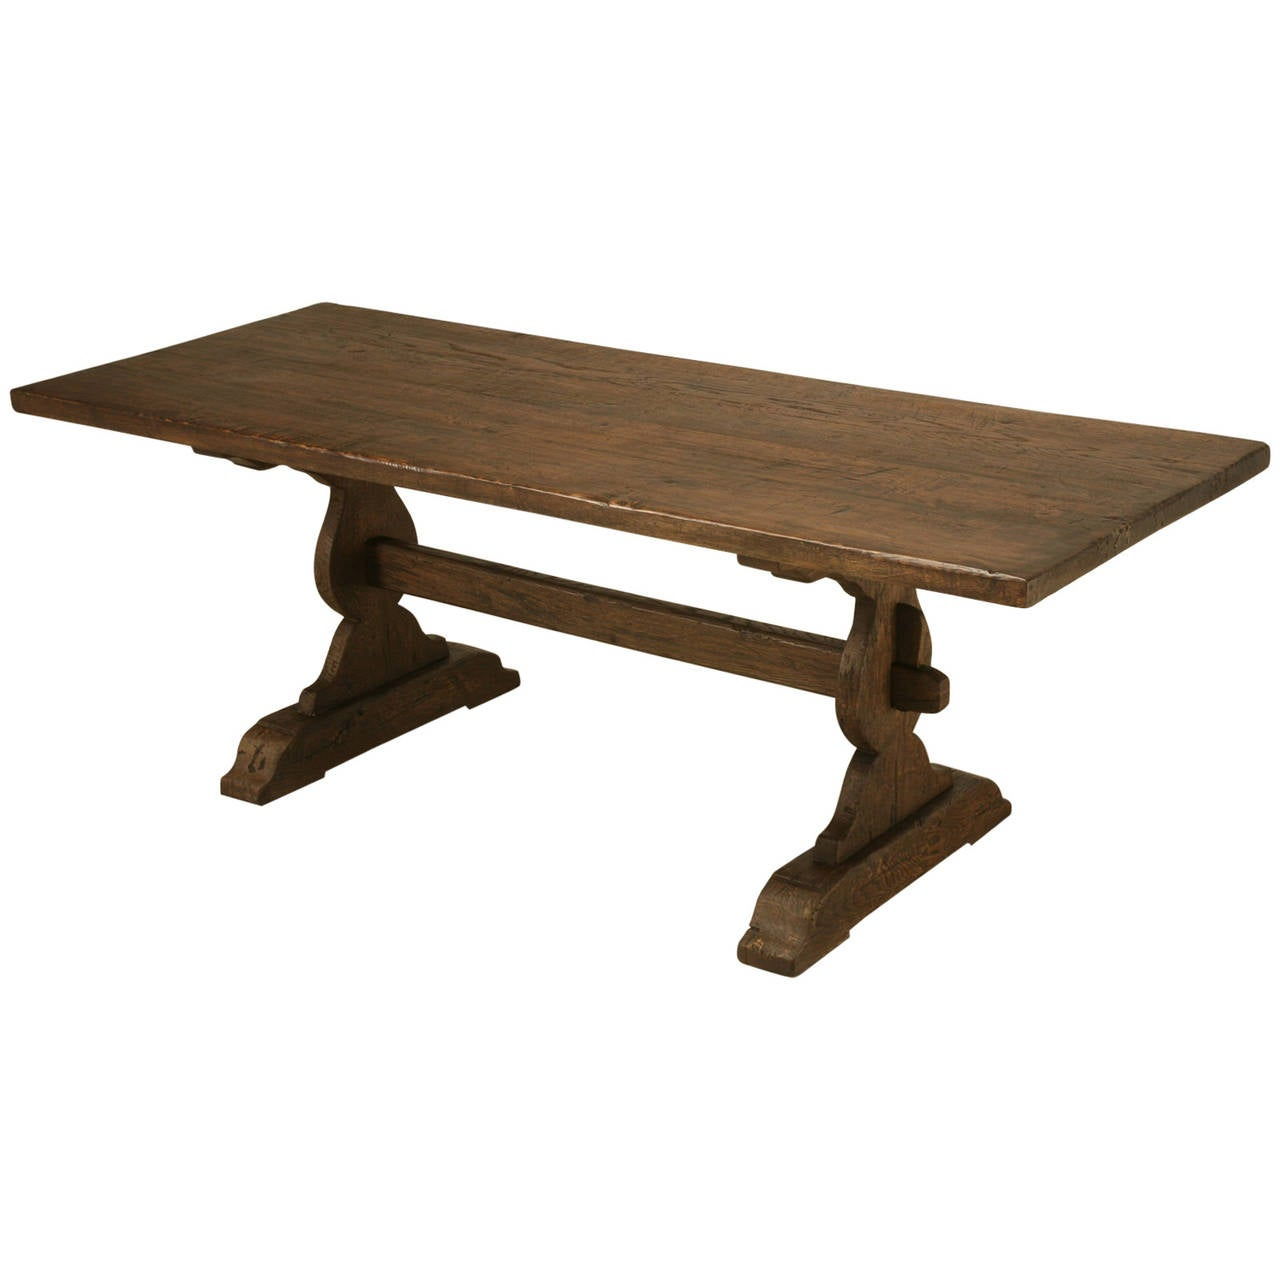 Antique French Farm or Trestle Table at 1stdibs : 3050352l from www.1stdibs.com size 1280 x 1280 jpeg 62kB